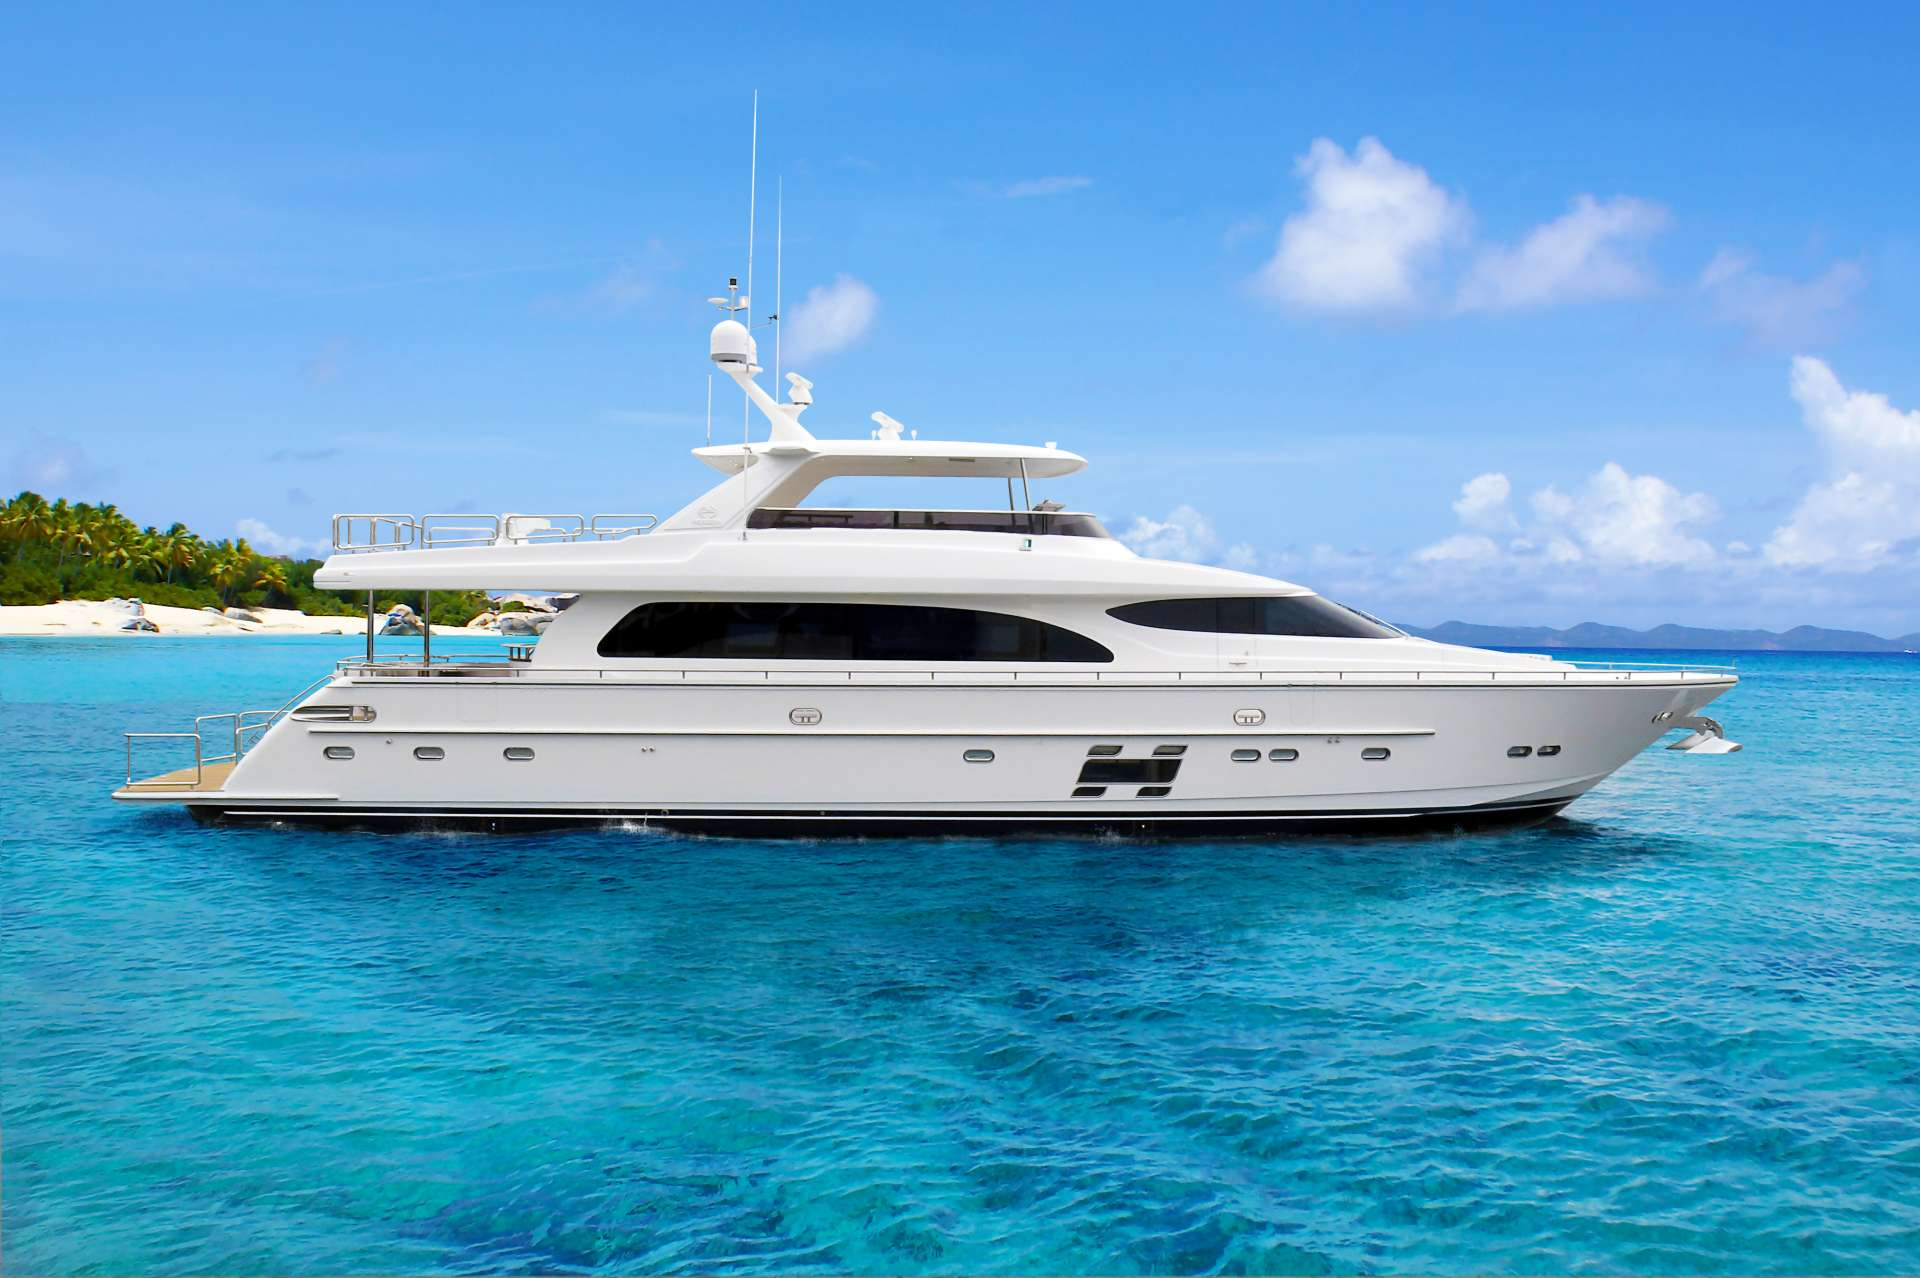 Charter with AQUA LIFE on compassyachtcharters.com